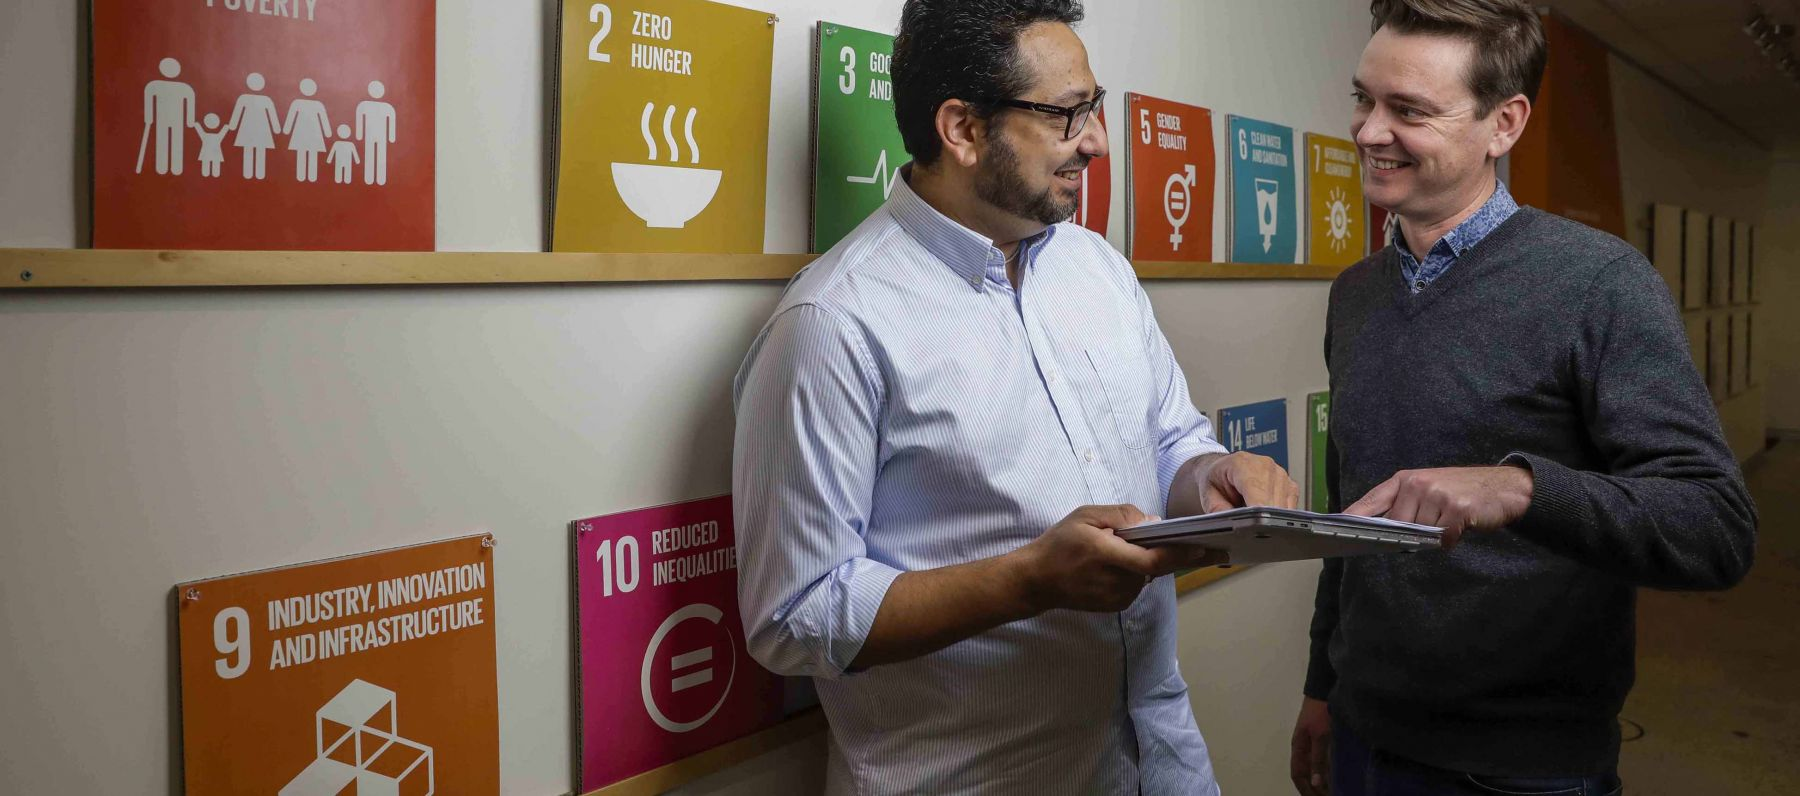 Sustainable Development Goals at ThinkPlace